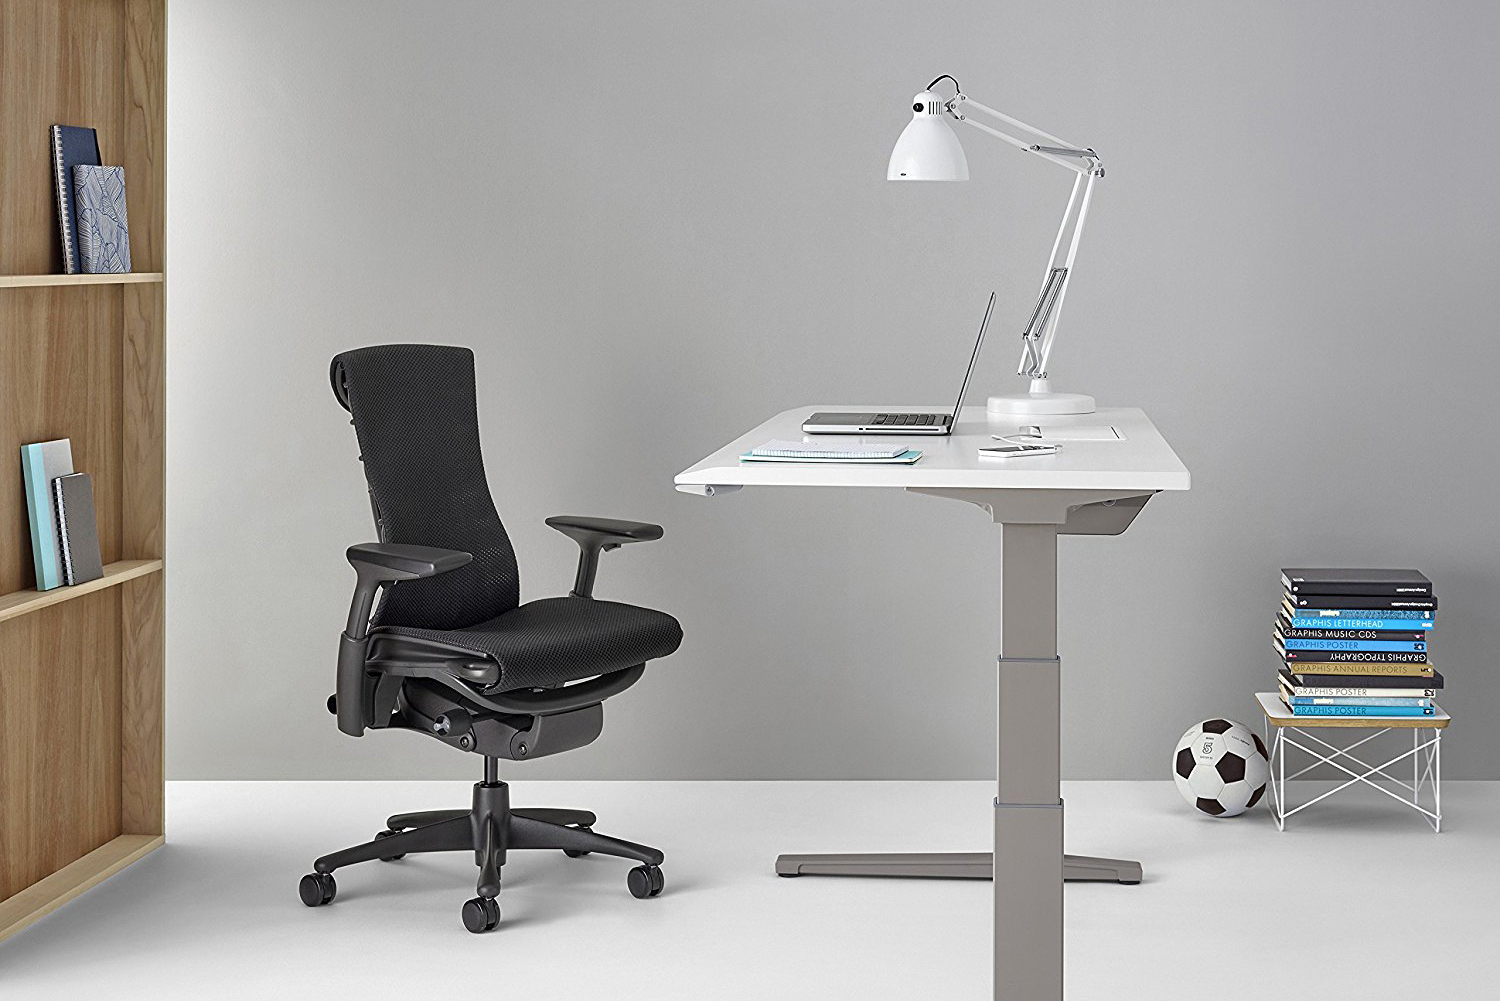 Best Office Desks the 11 best chairs for your home or office | digital trends